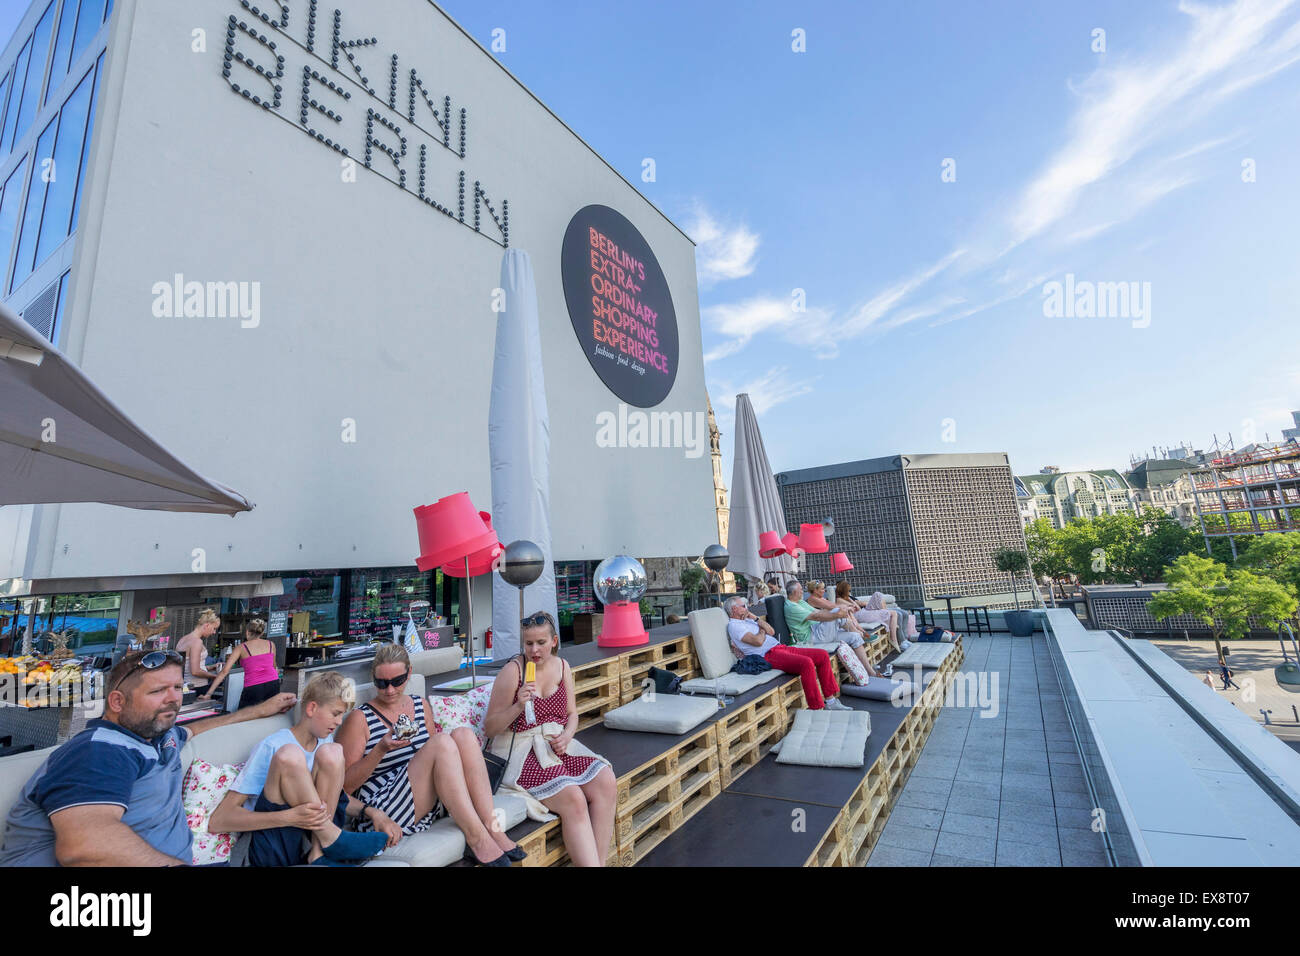 rooftop bar at bikini berlin new shopping centre in berlin germany stock photo 85016967 alamy. Black Bedroom Furniture Sets. Home Design Ideas